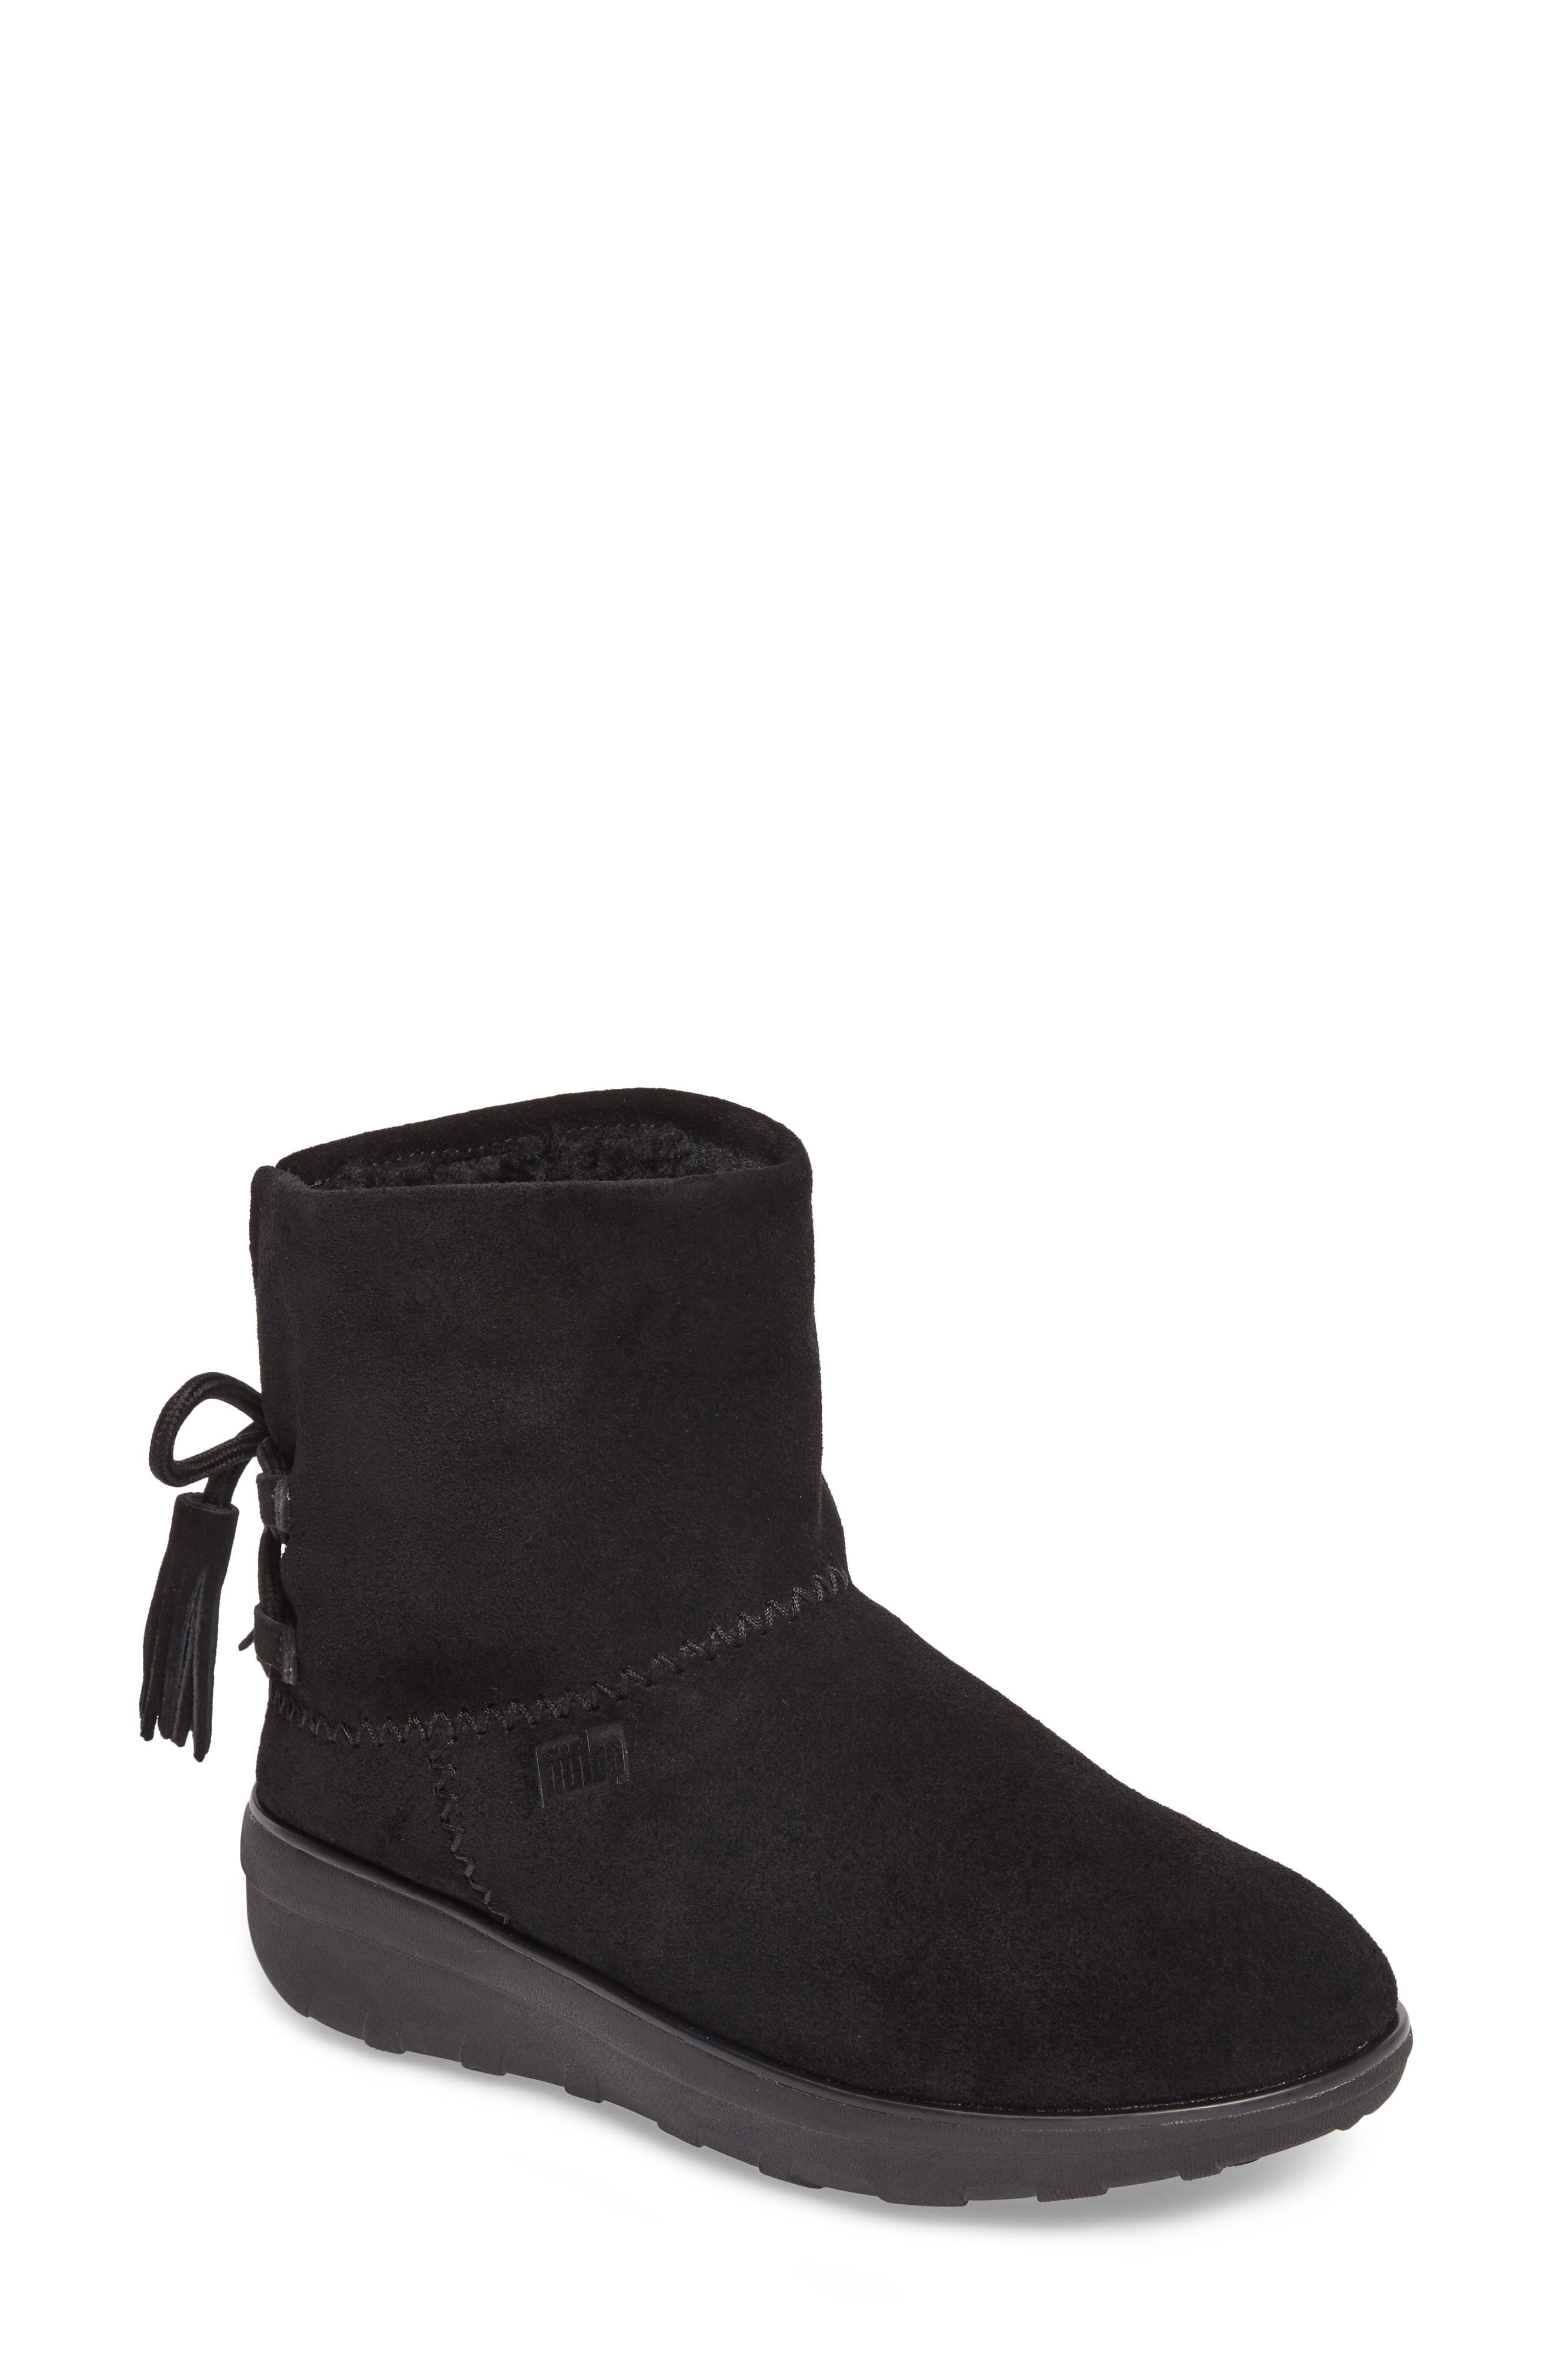 FitFlop Mukluk Short Boot with Genuine Shearling Lining (Women)